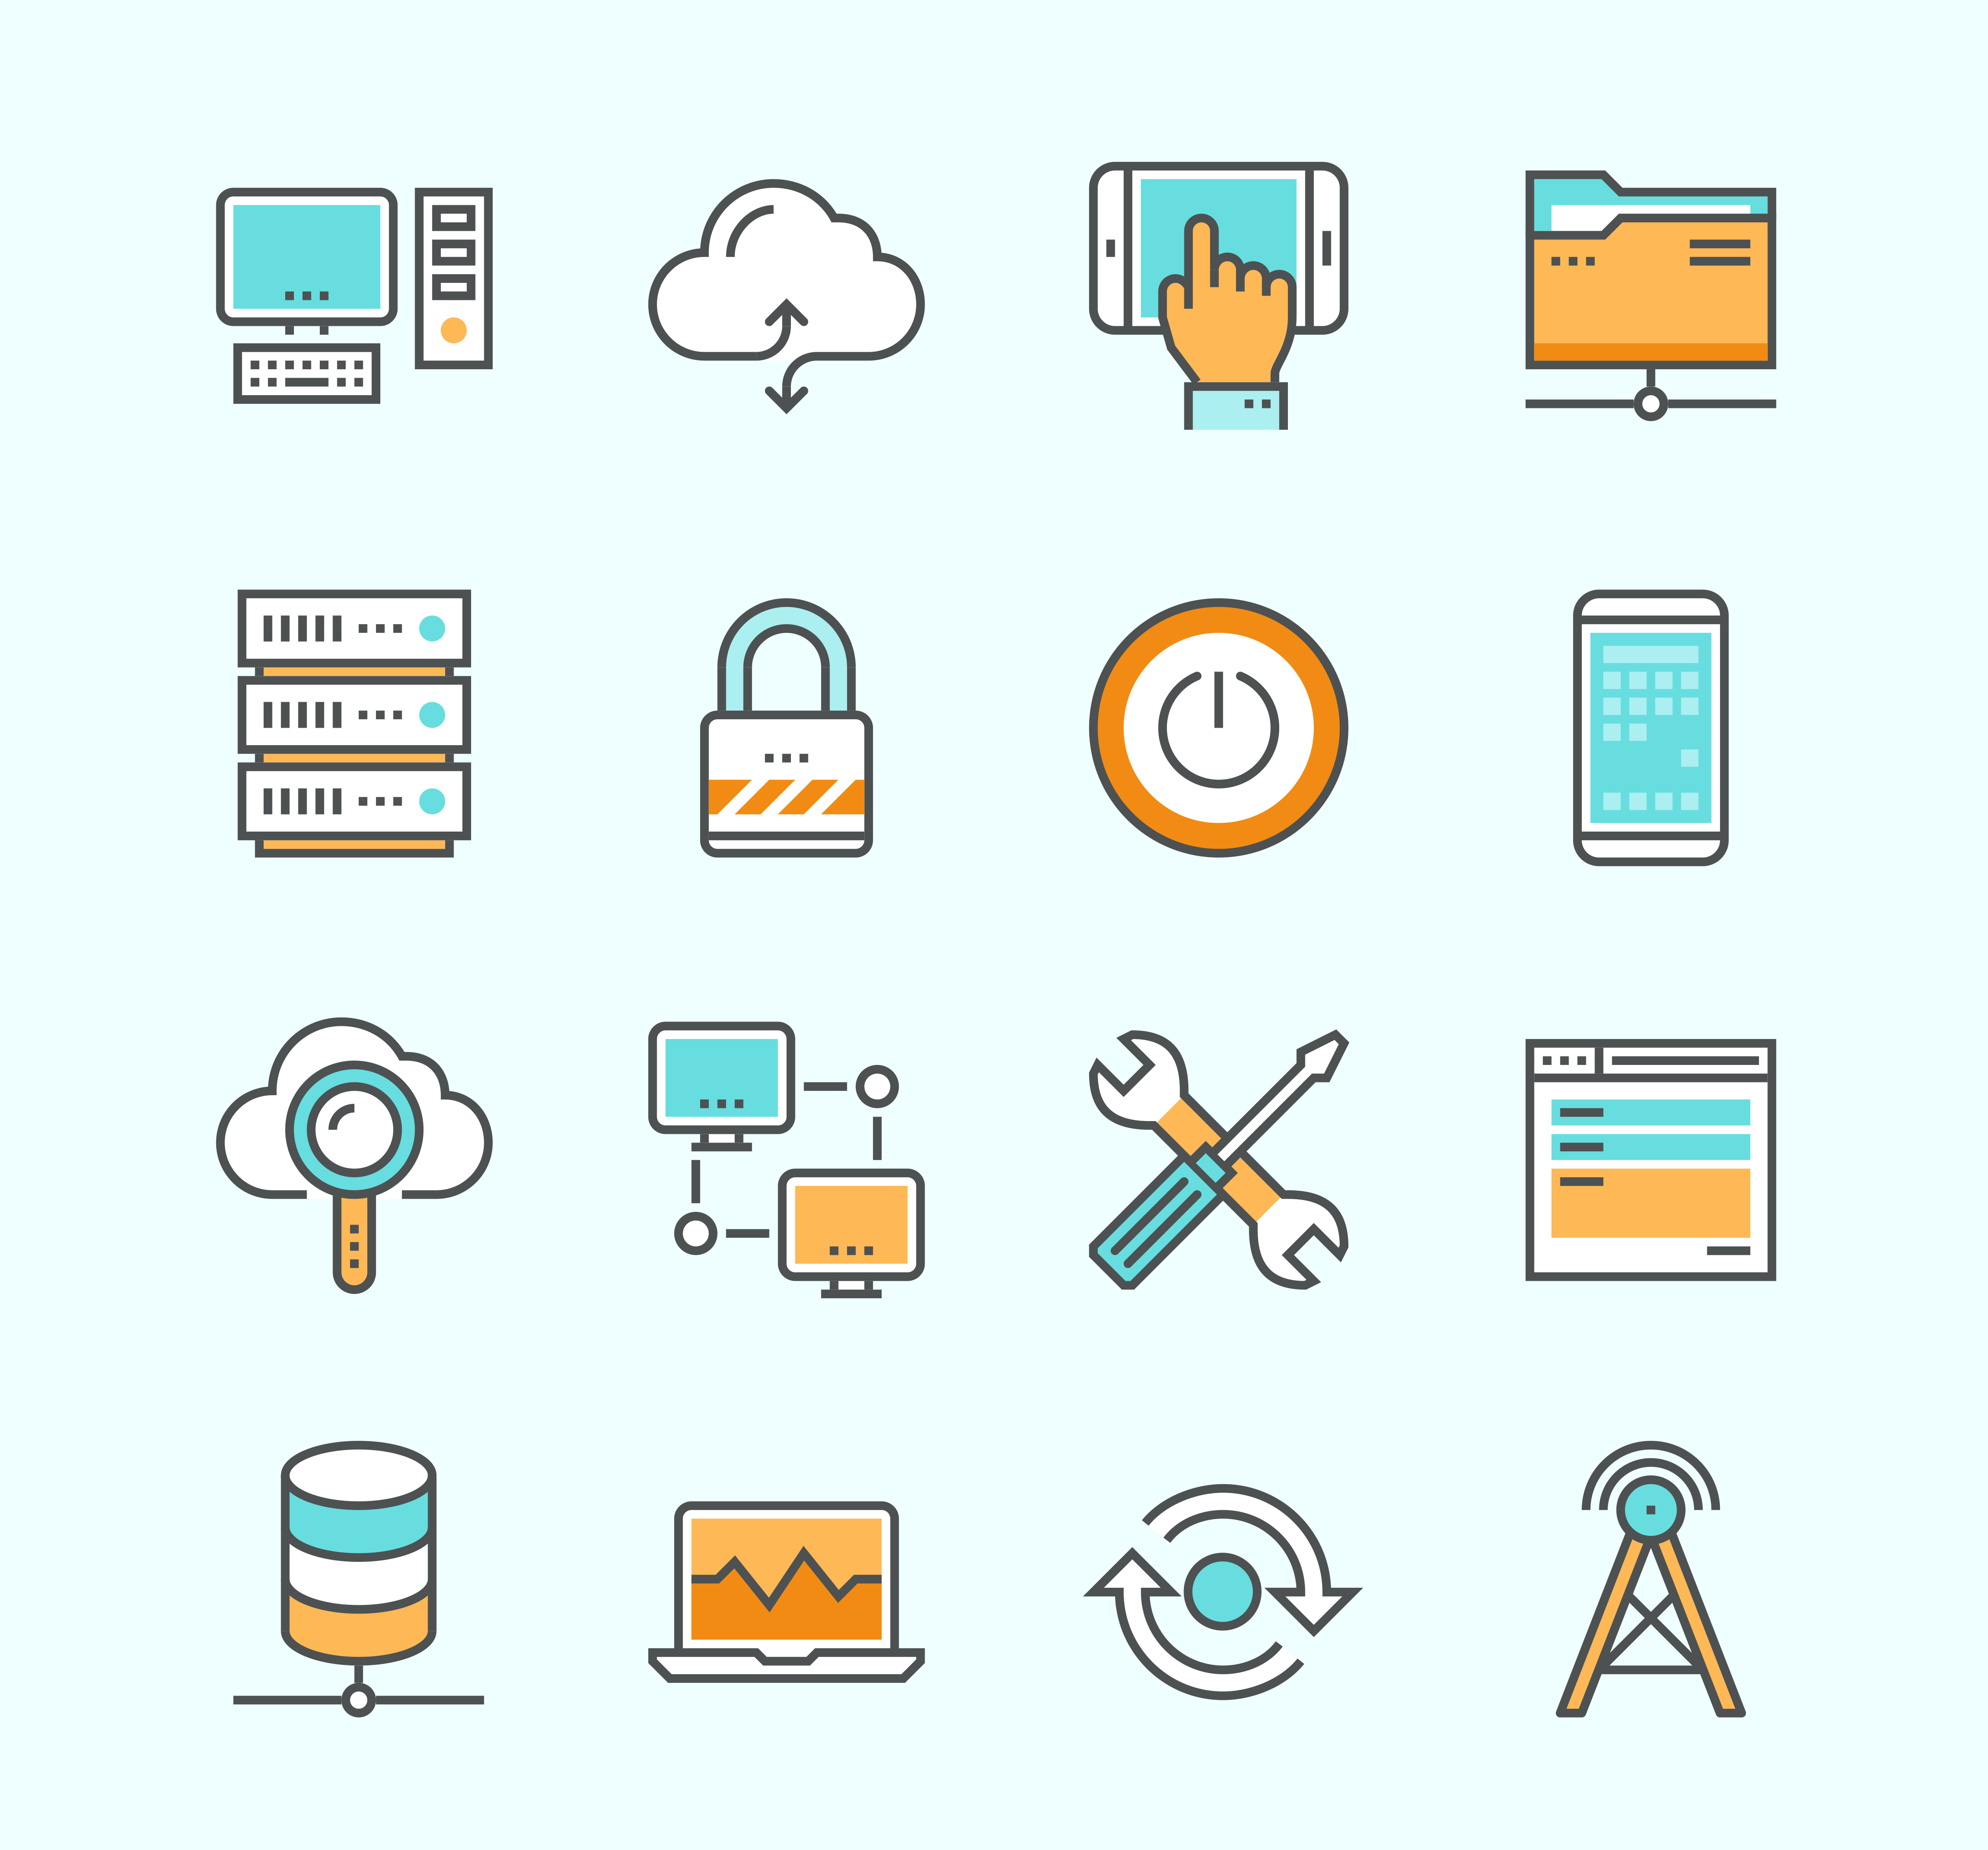 Line icons with flat design elements of computer network technology cloud computing networking server database technical instruments. Modern infographic vector logo pictogram collection concept.